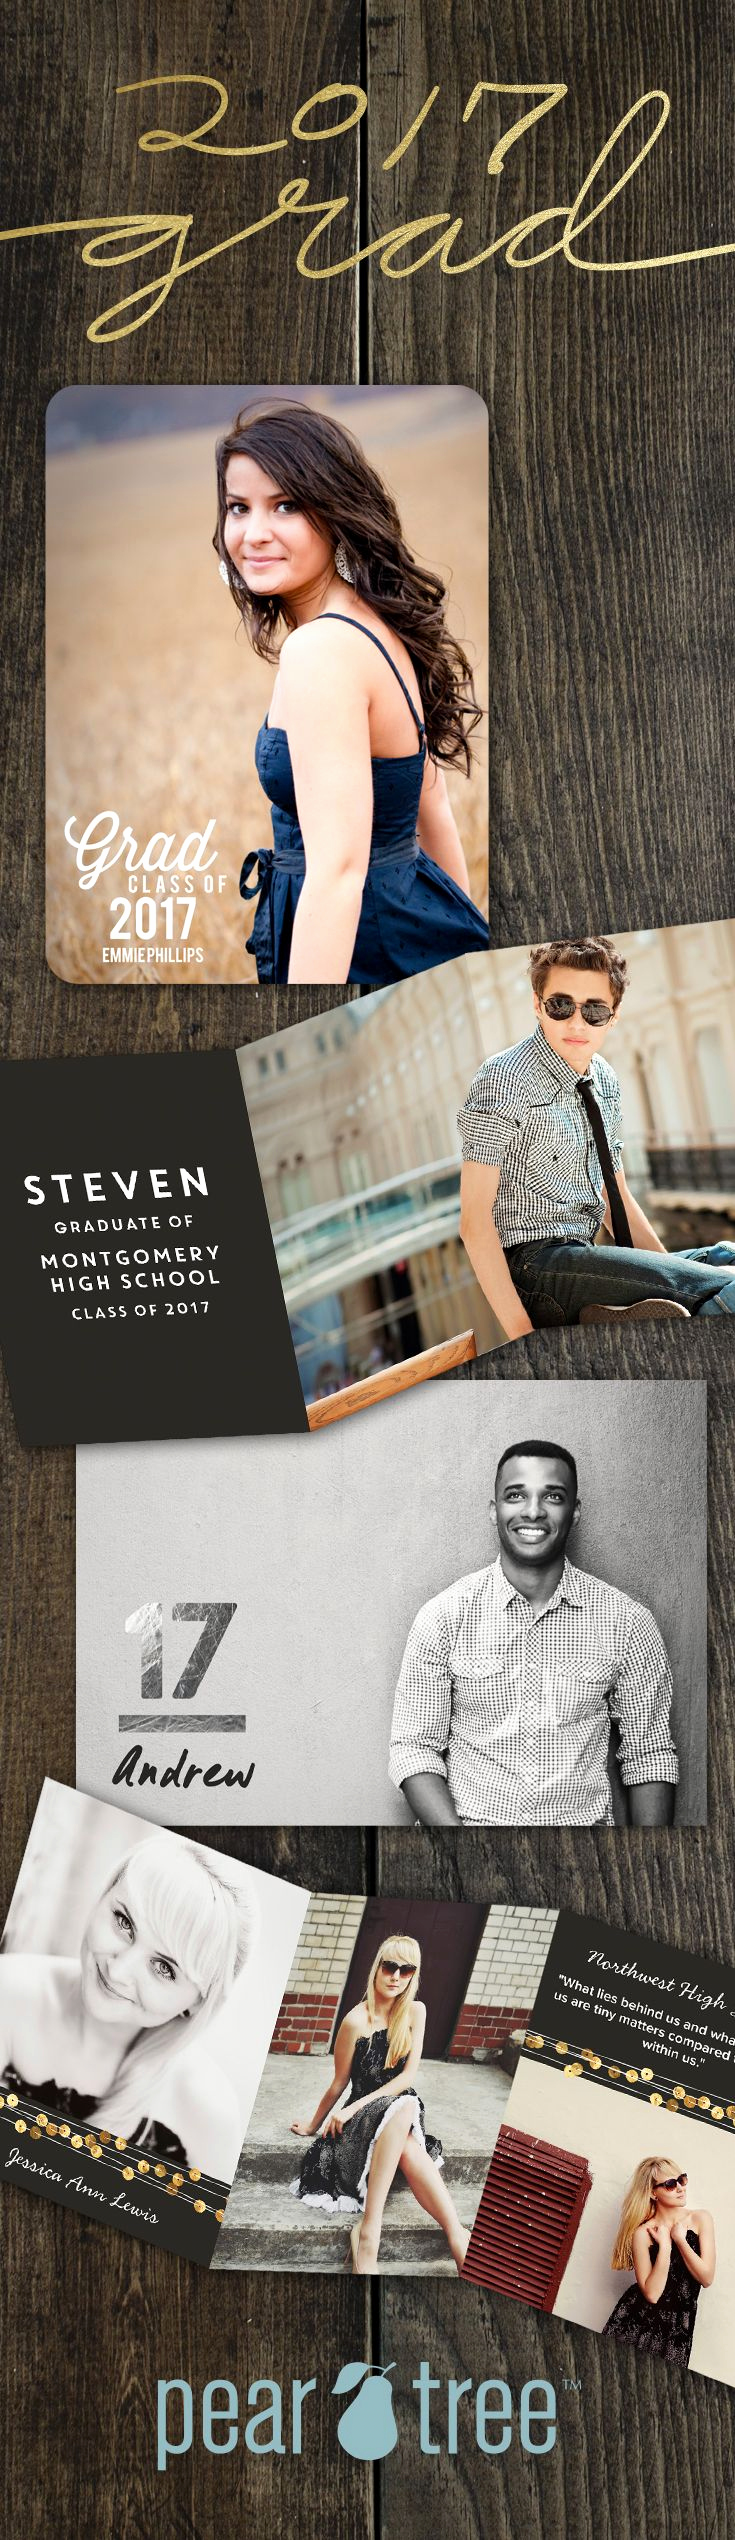 Creative Graduation Invitation Ideas New Best 25 Unique Graduation Invitations Ideas On Pinterest